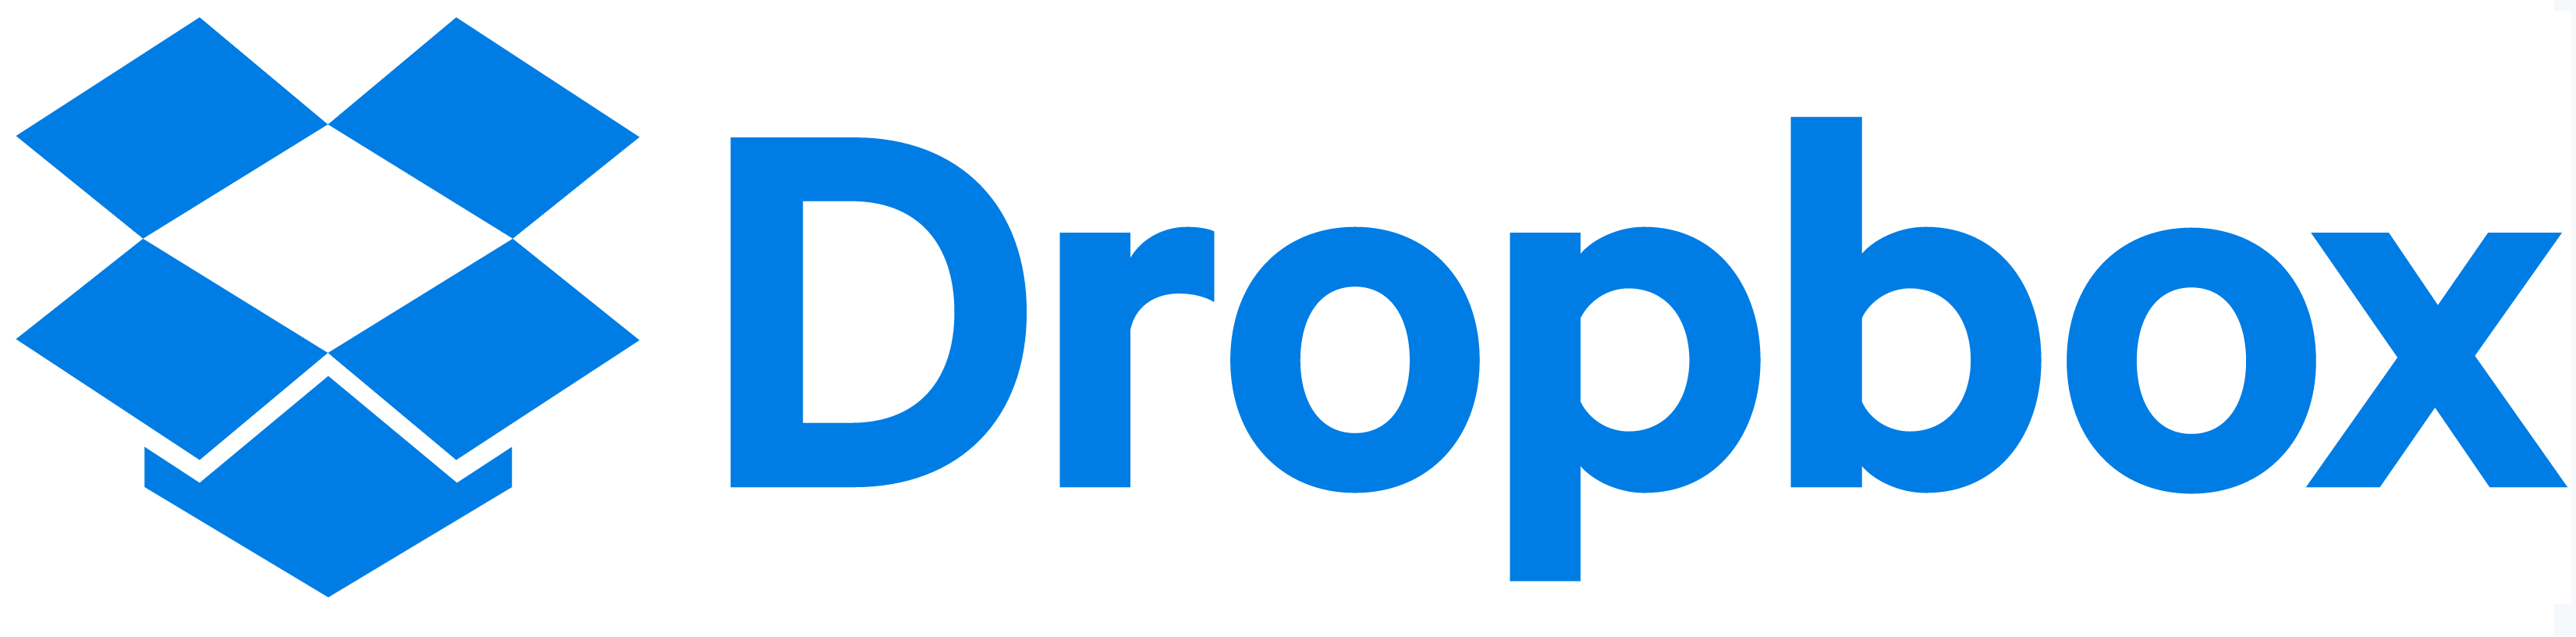 Build Your Own Dropbox Client with the Dropbox API